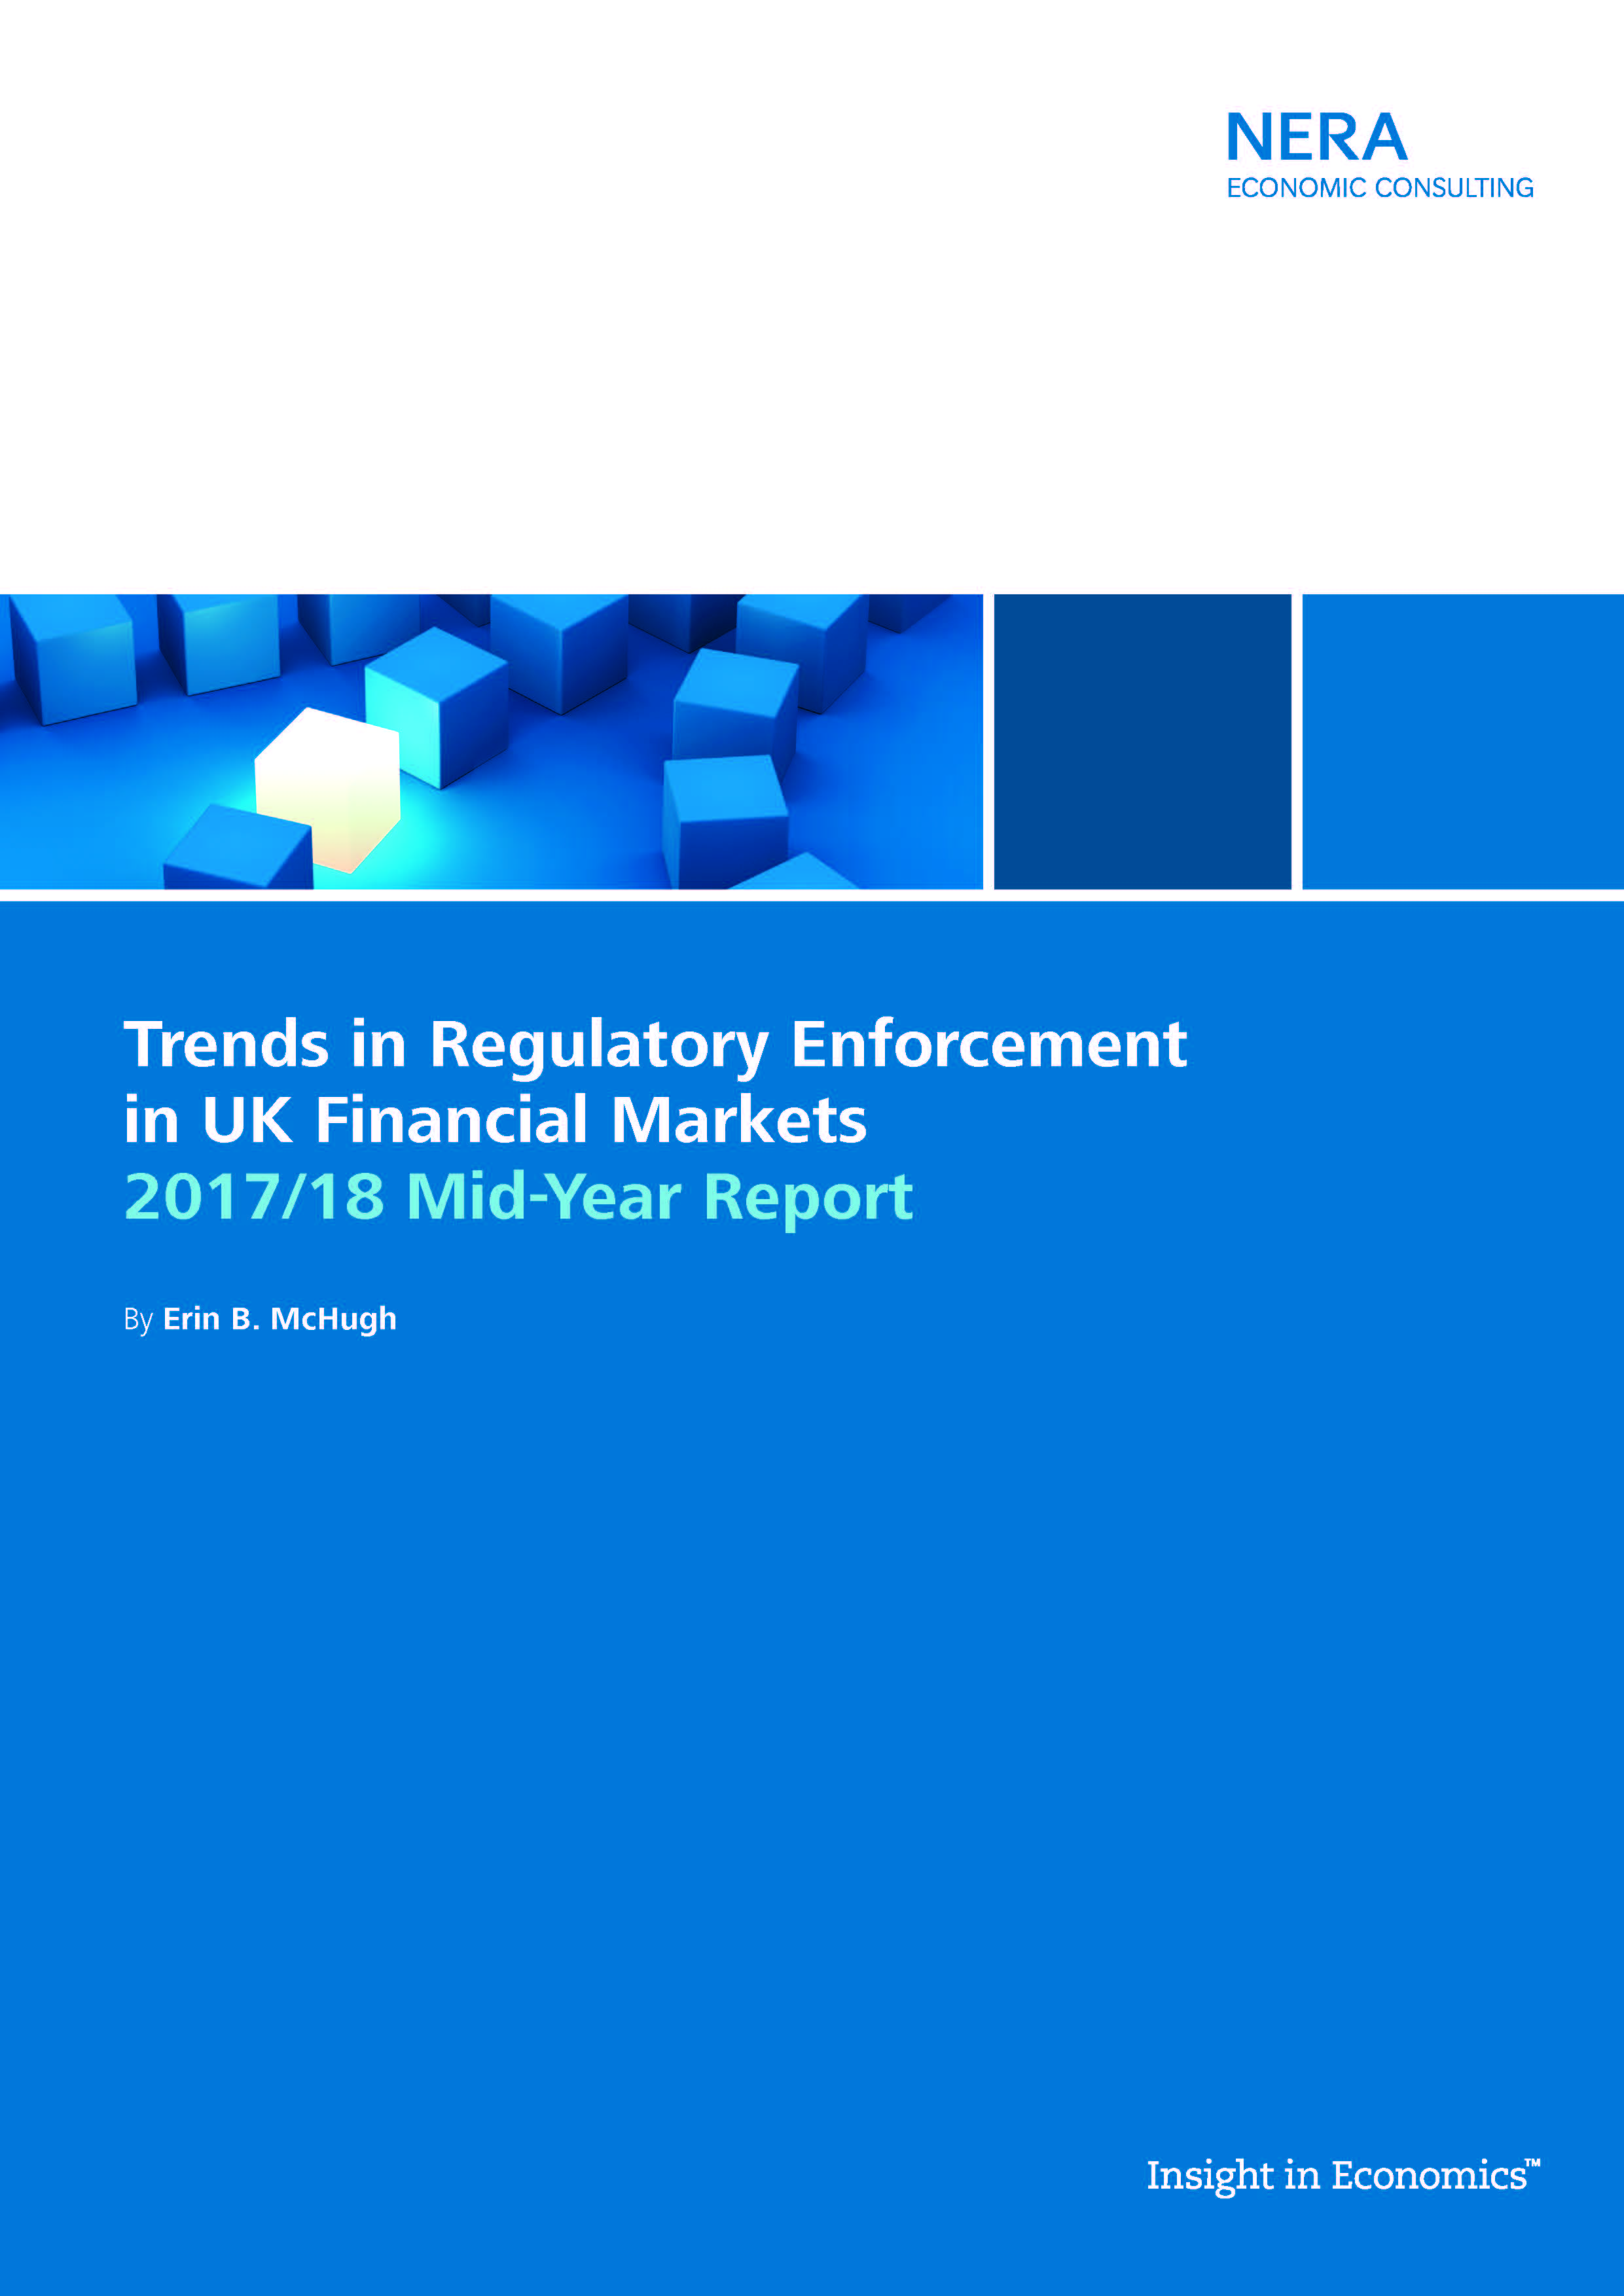 Trends in Regulatory Enforcement in UK Financial Markets Reports